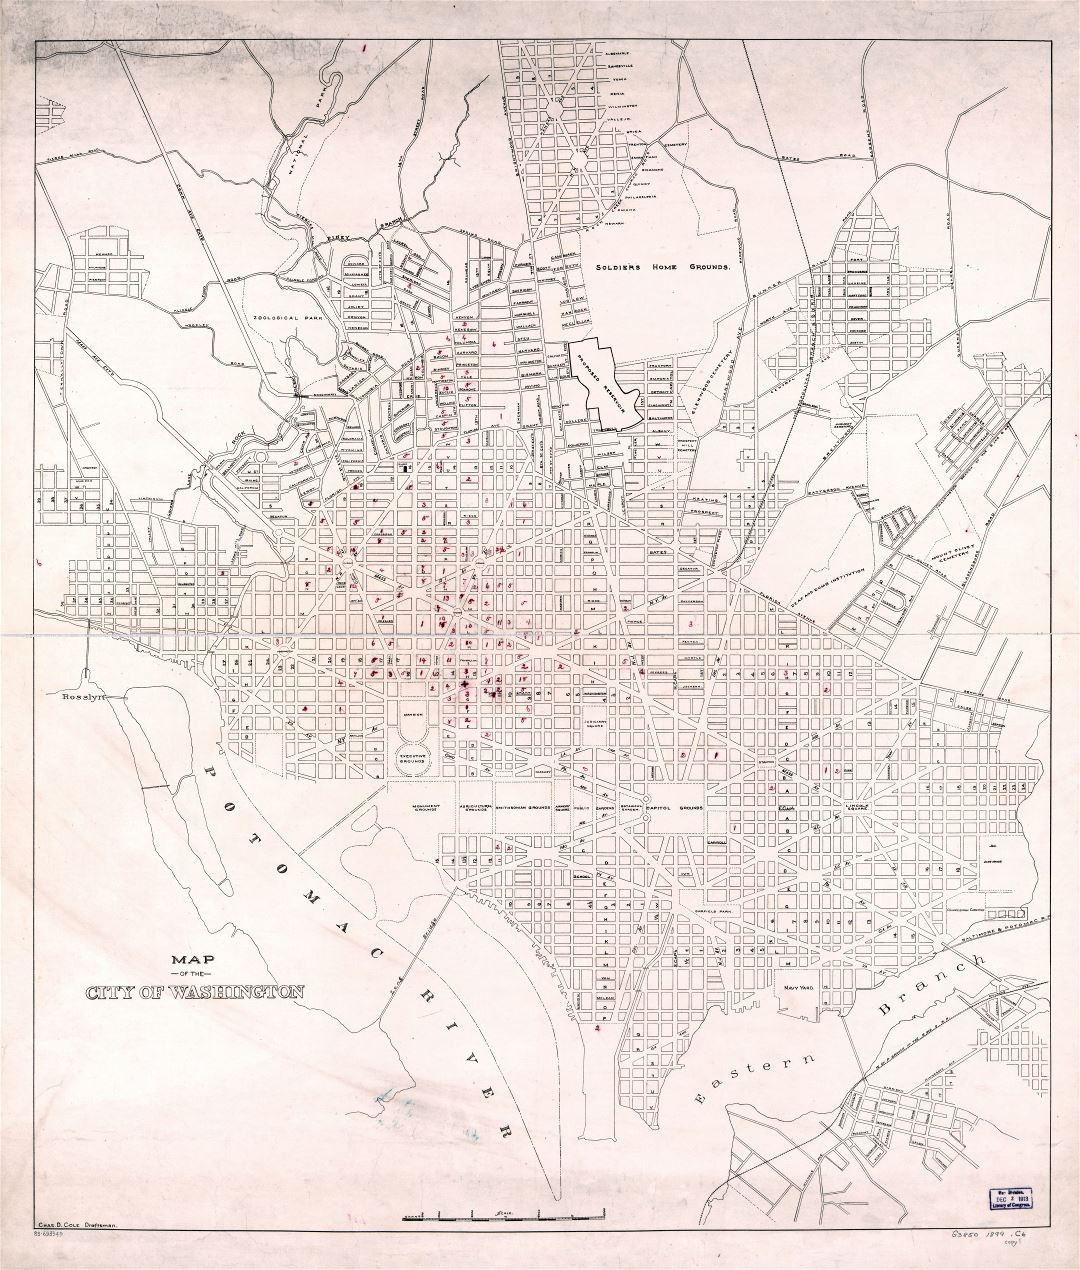 Large scale detailed old map of the city of Washington DC 1899